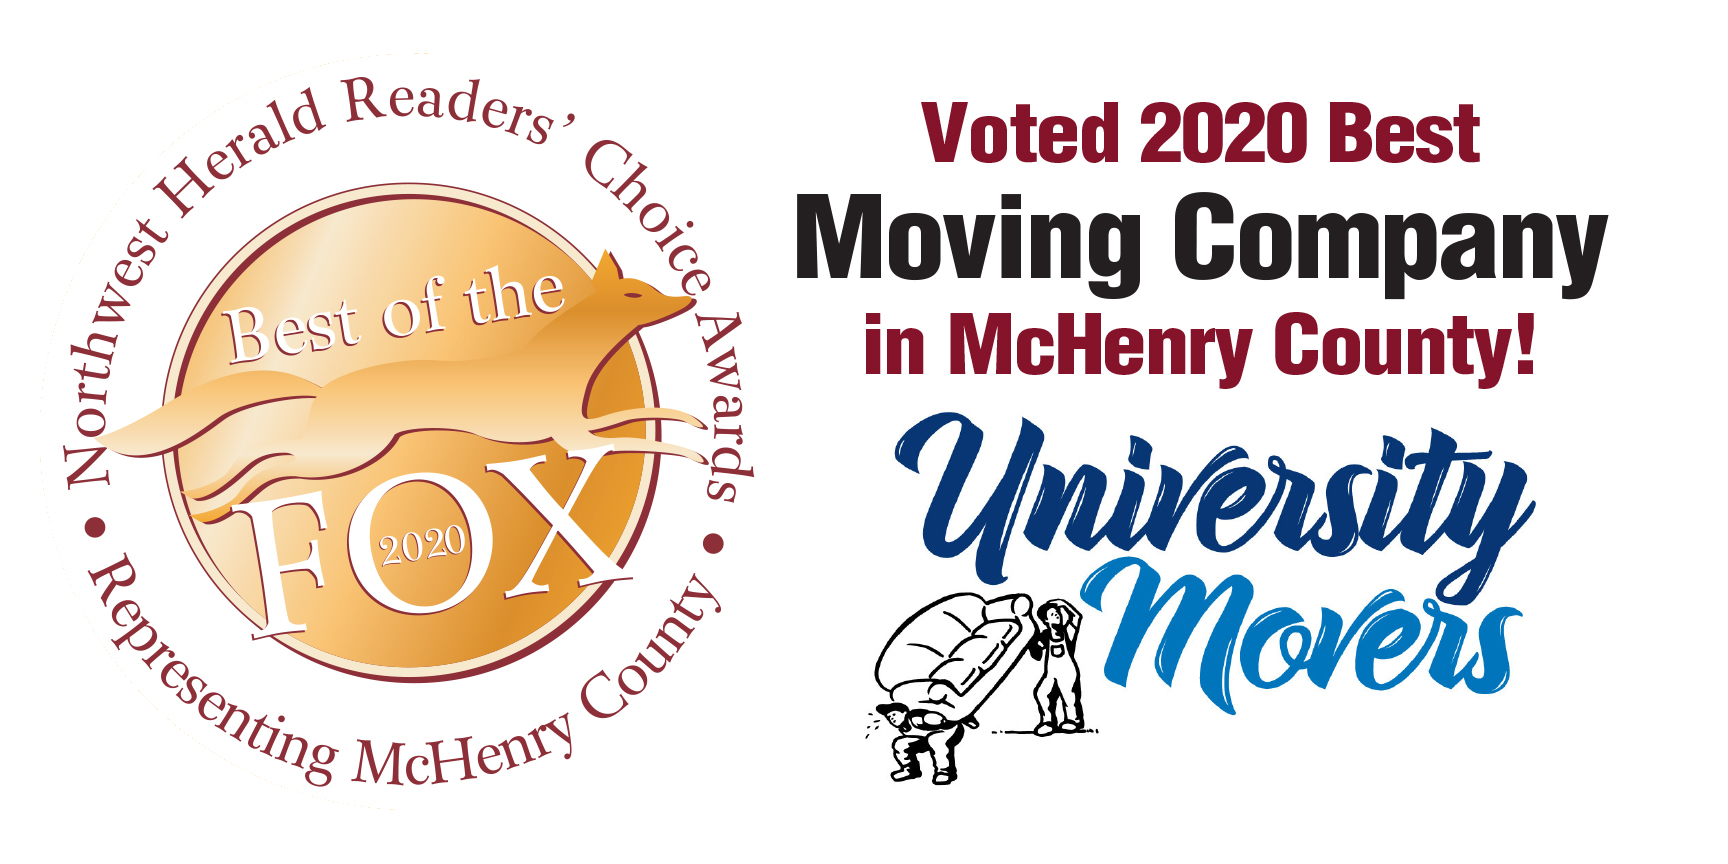 University Movers - Best of the Fox 2020 (BIG)